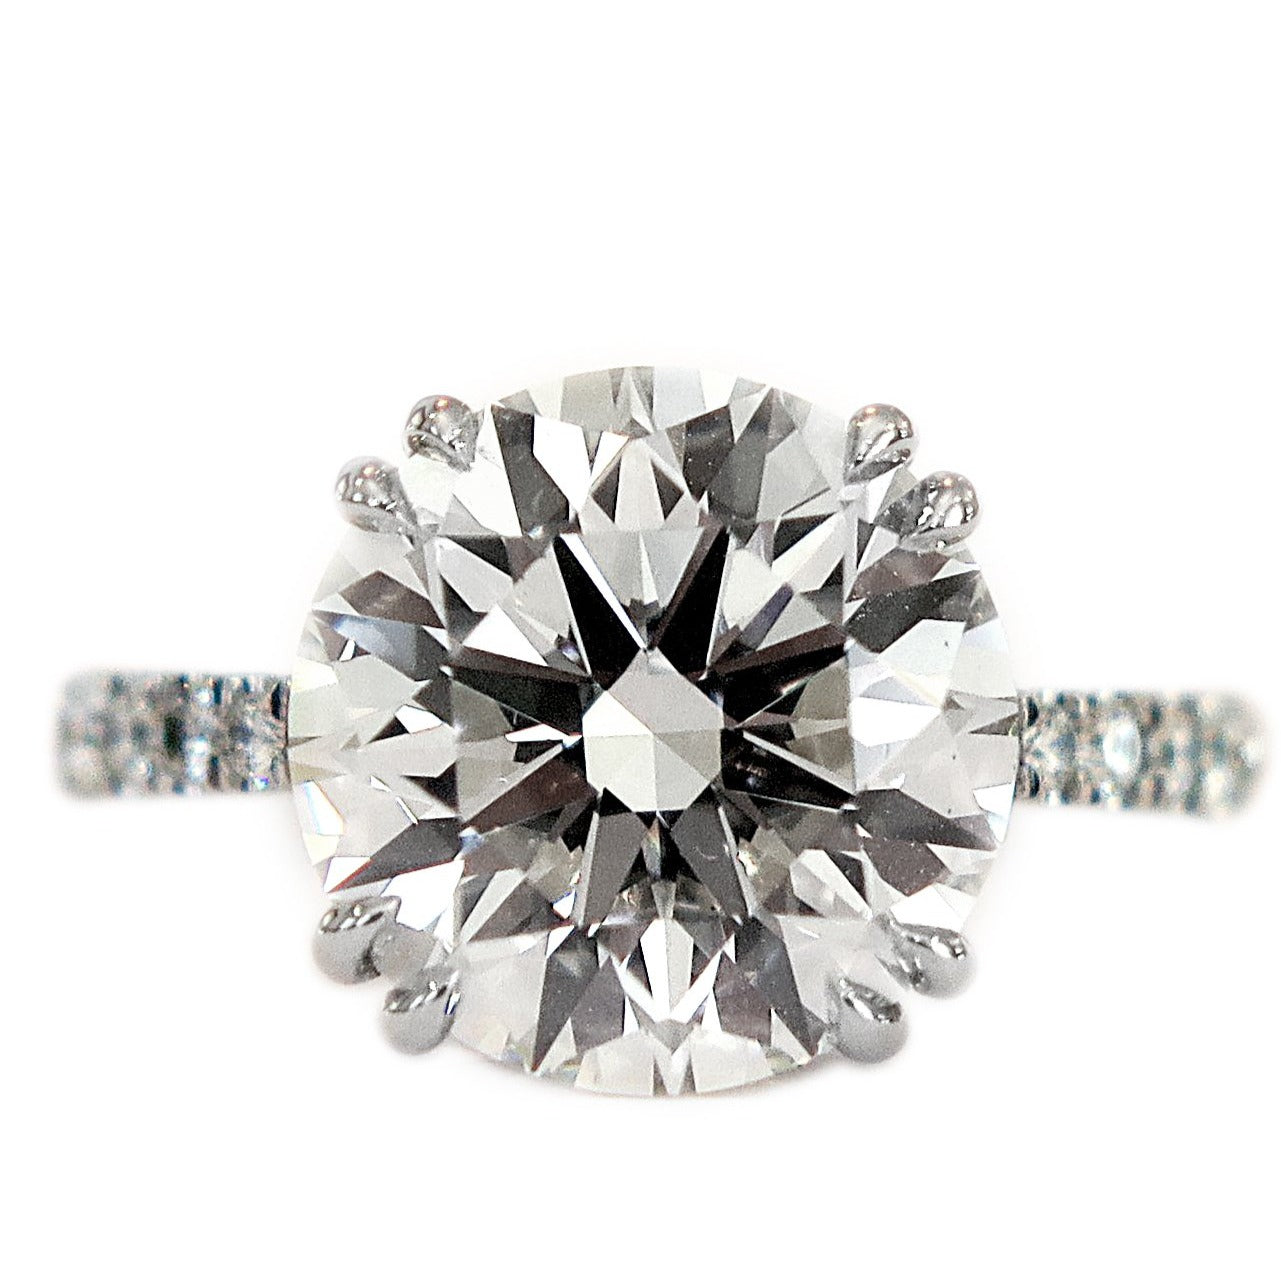 ANNABEL 5 CARAT DIAMOND RING